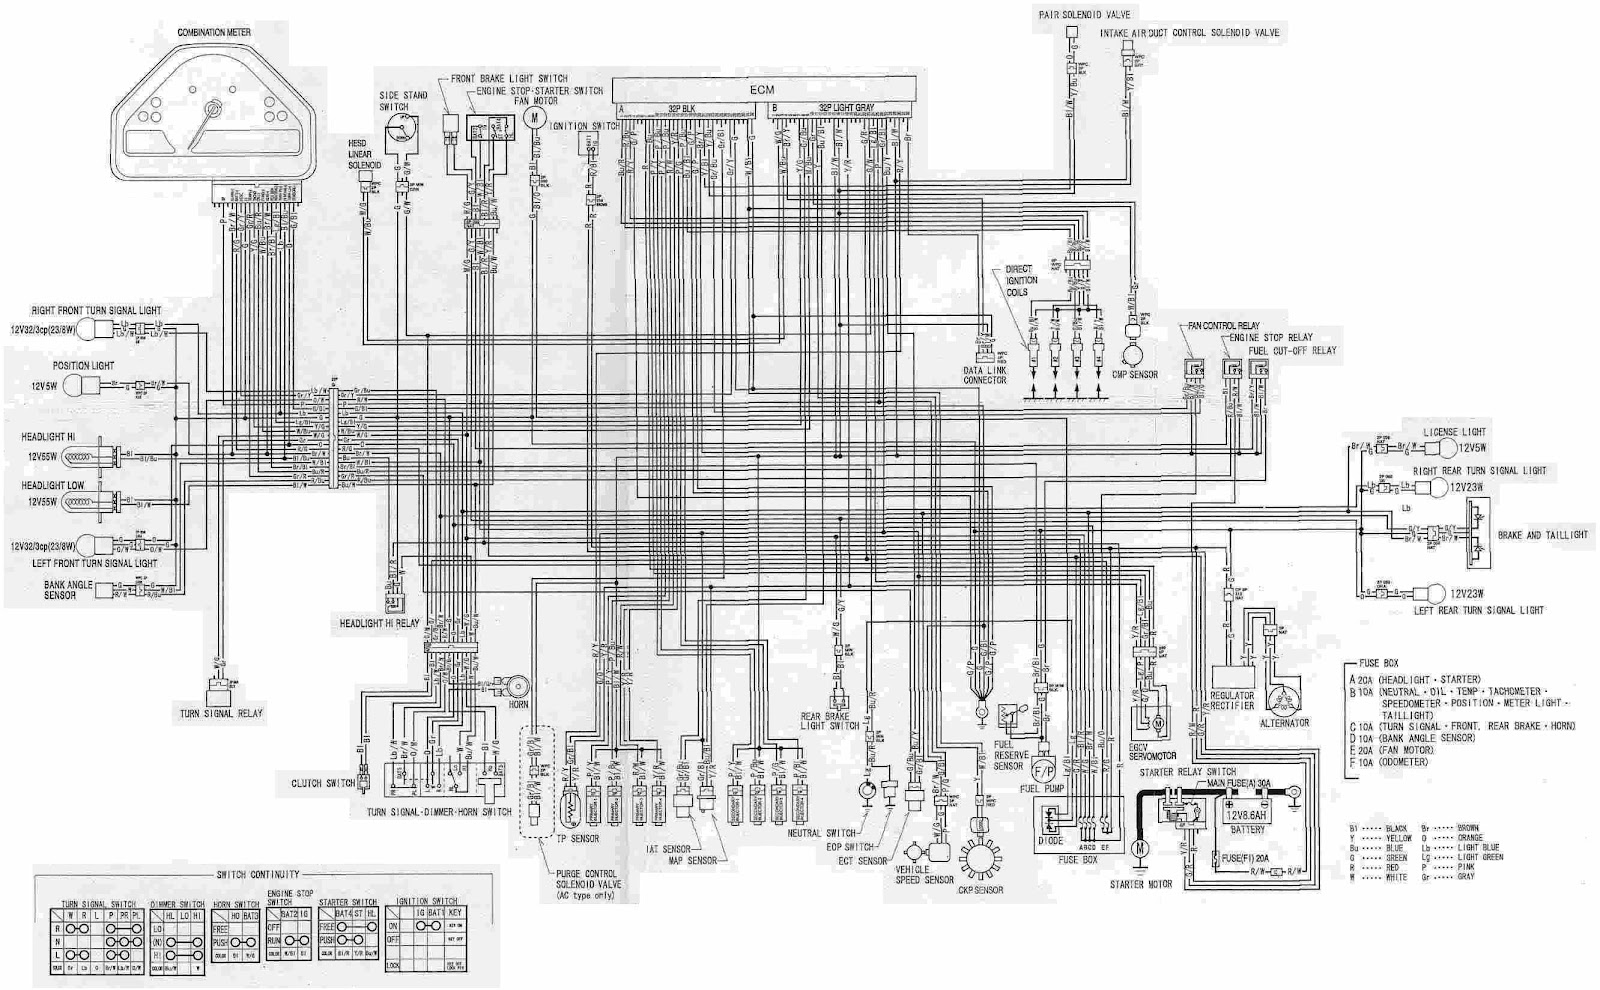 2010 cbr 1000 wire diagram everything wiring diagram2010 cbr 1000 wire diagram wiring diagram 2010 cbr 1000 wire diagram